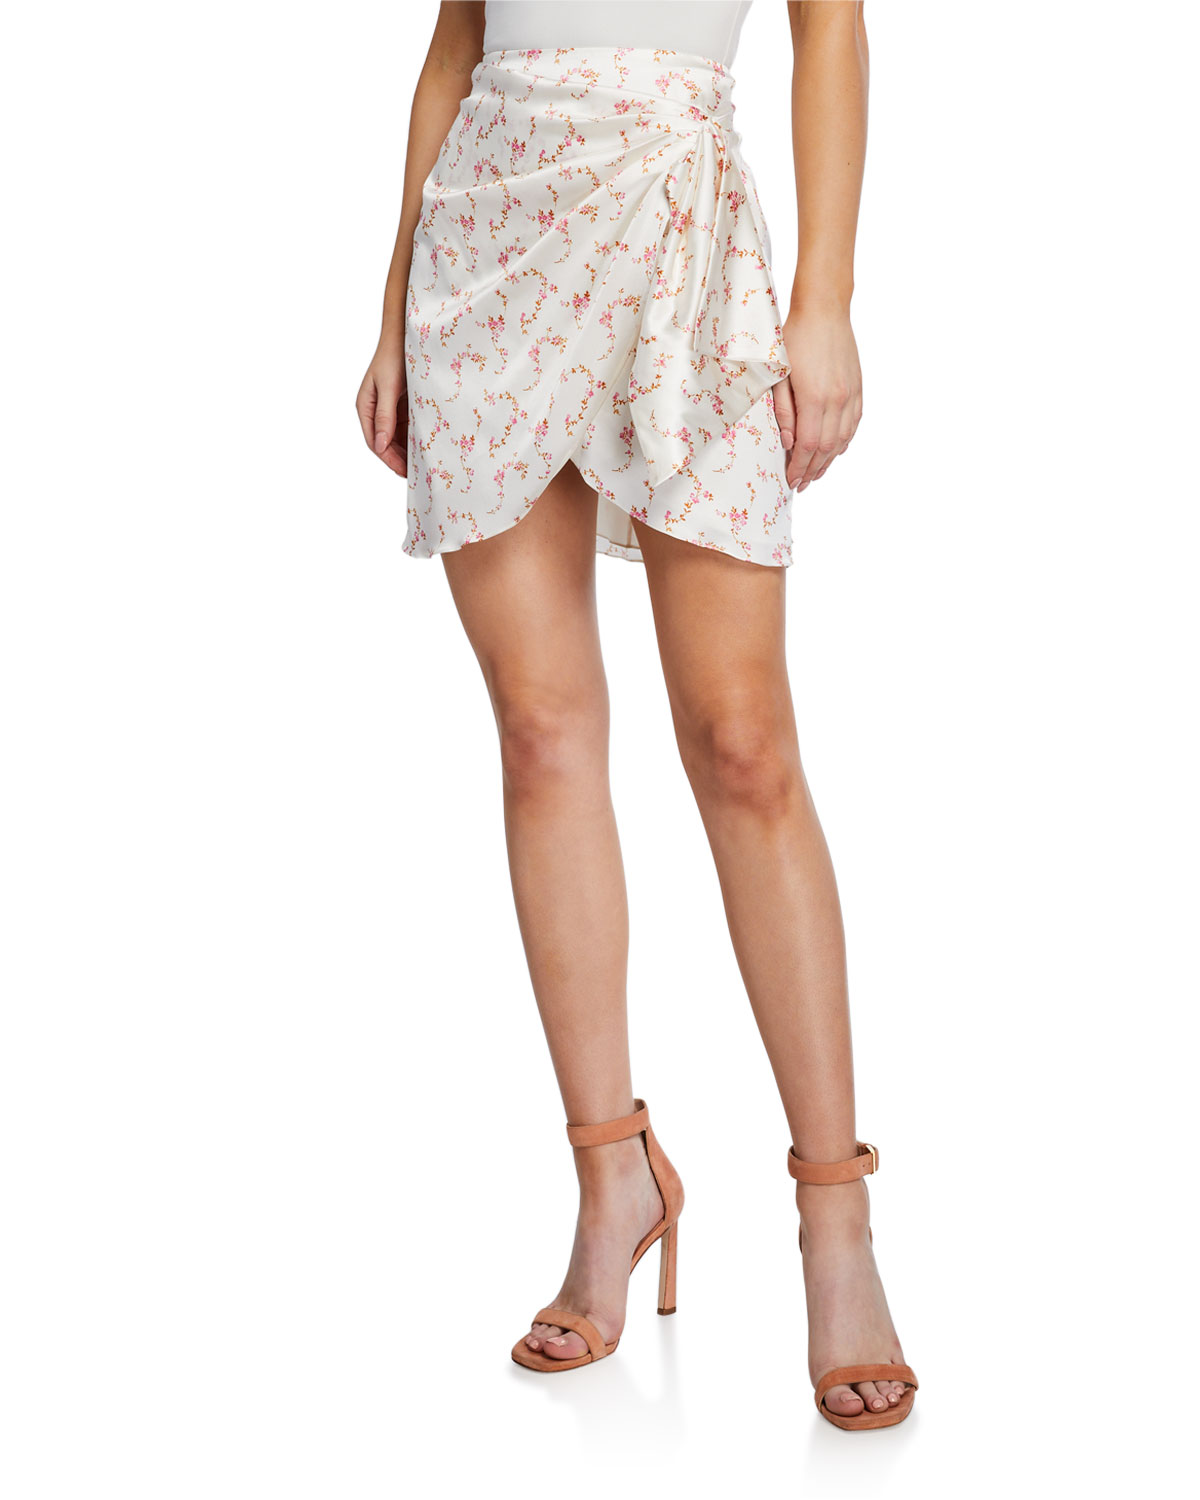 Caroline Constas Koren Draped Floral Mini Skirt